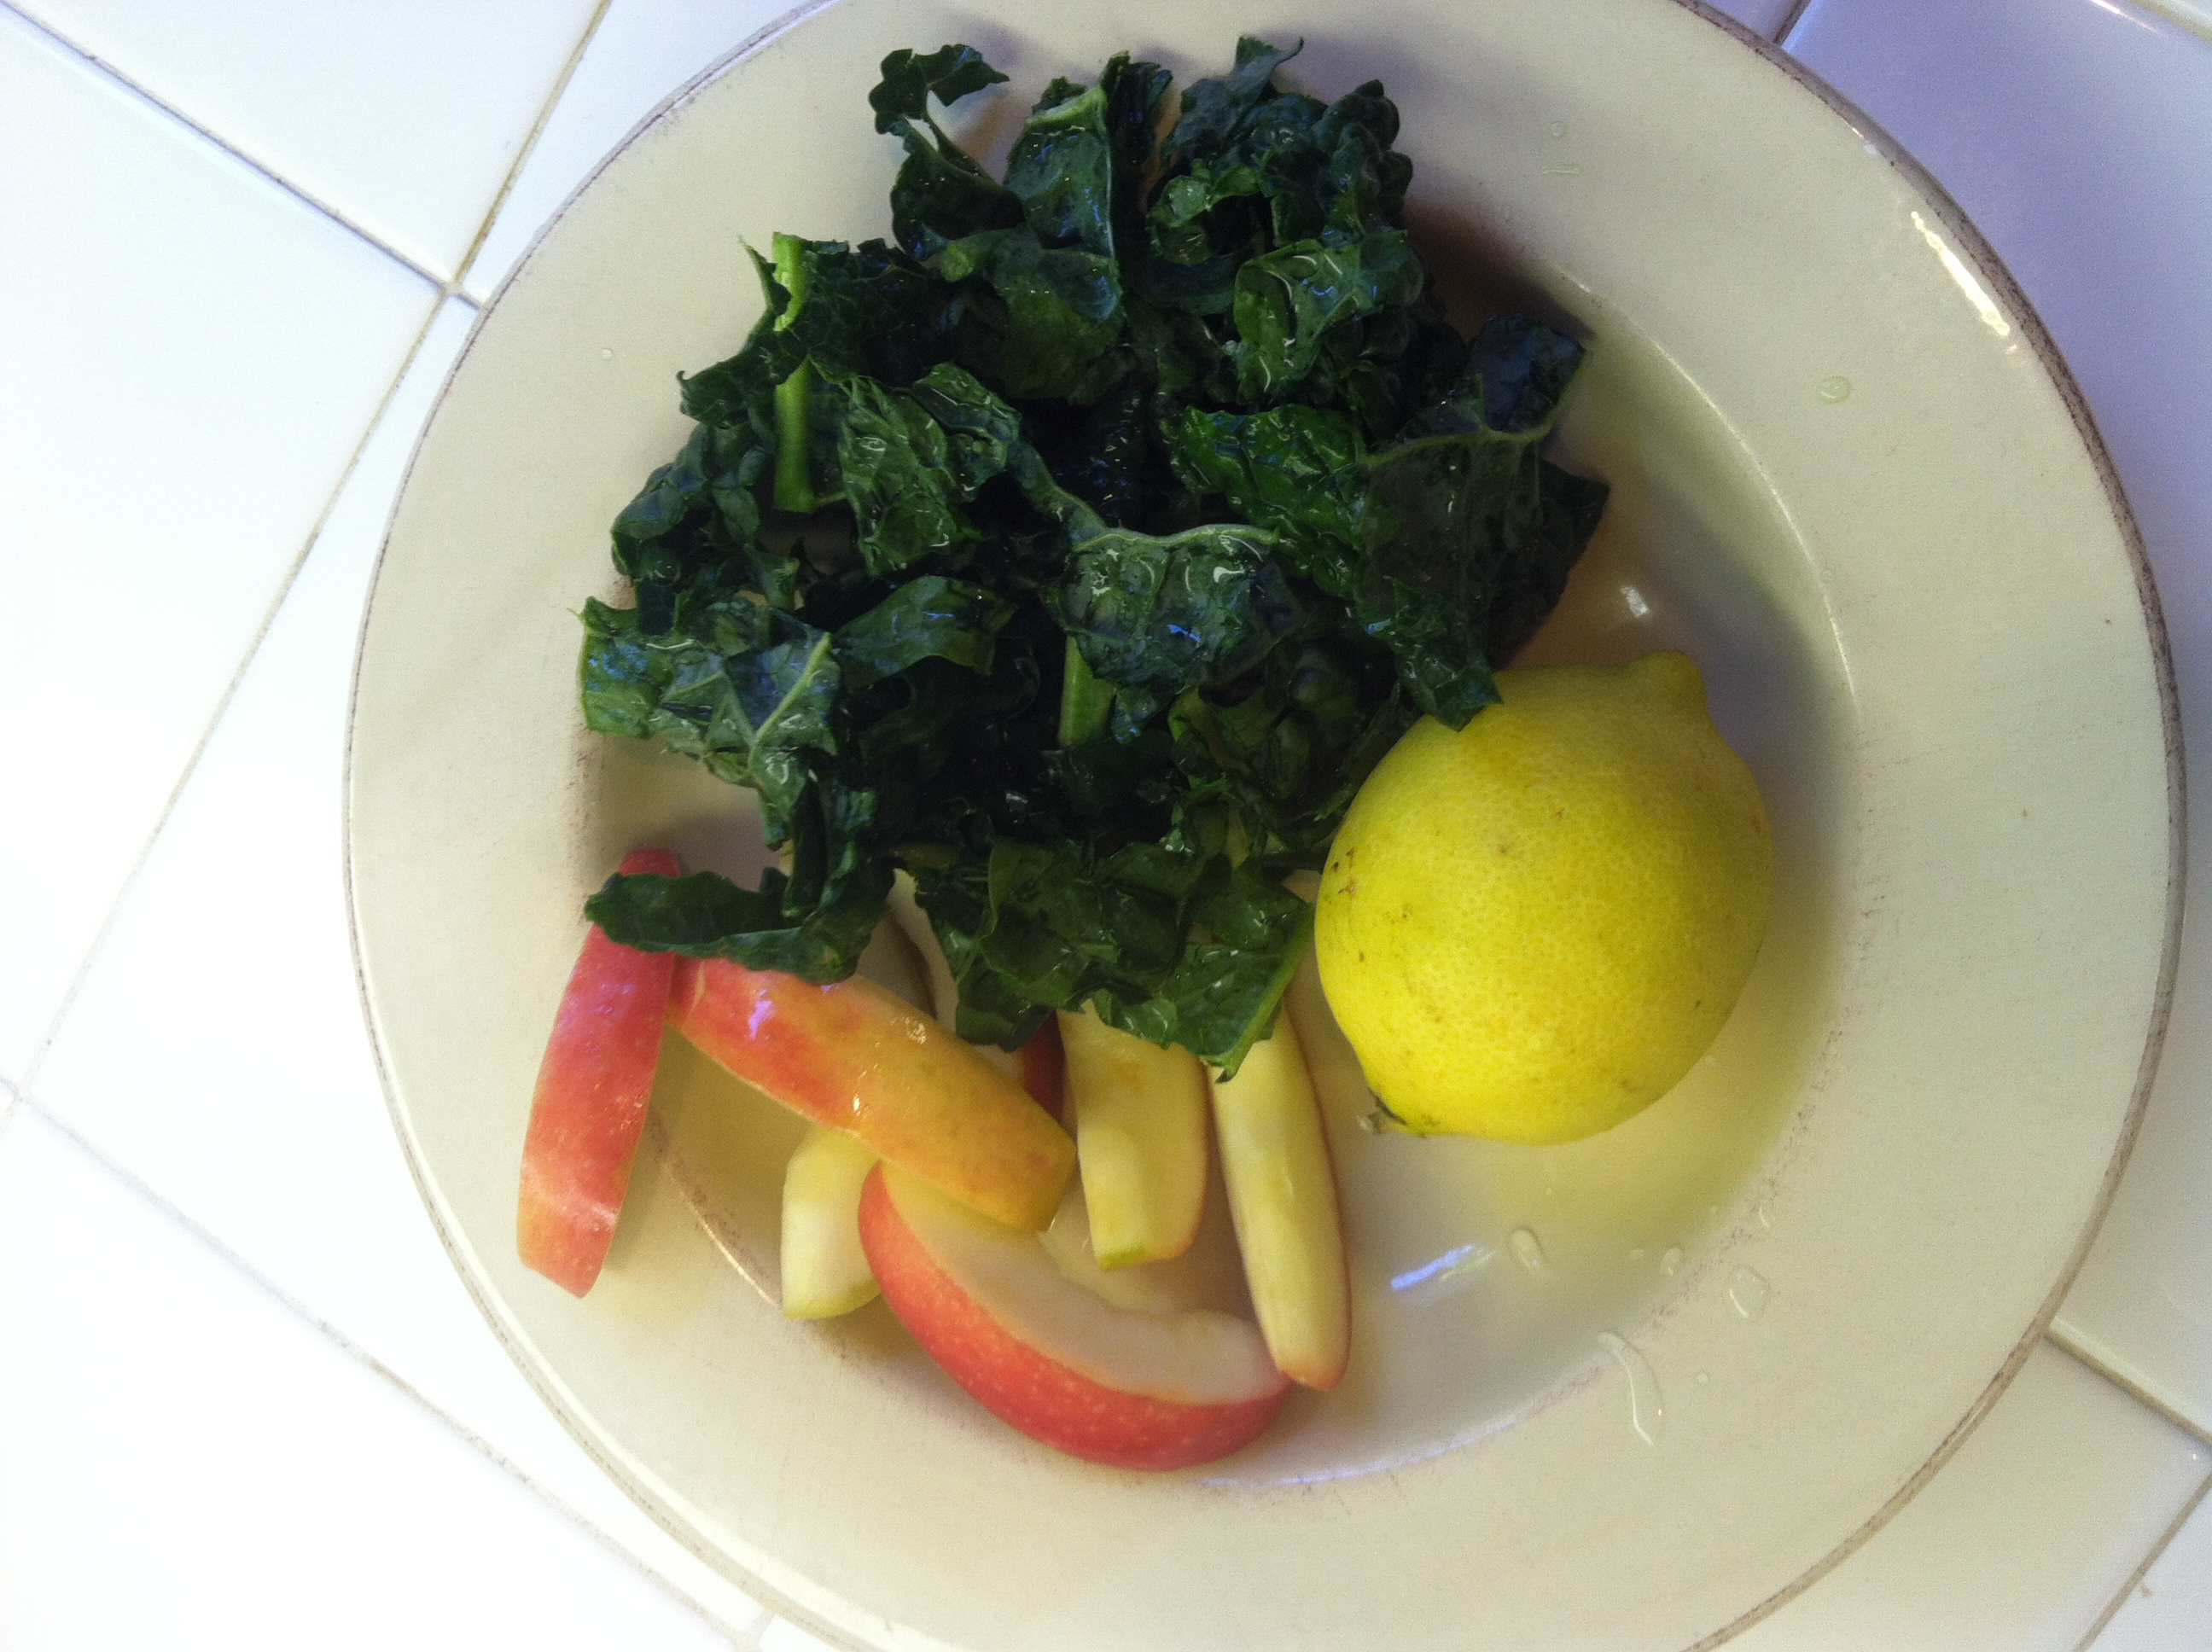 Ingredients for a basic green smoothie. You may add banana or dates for sweetness.